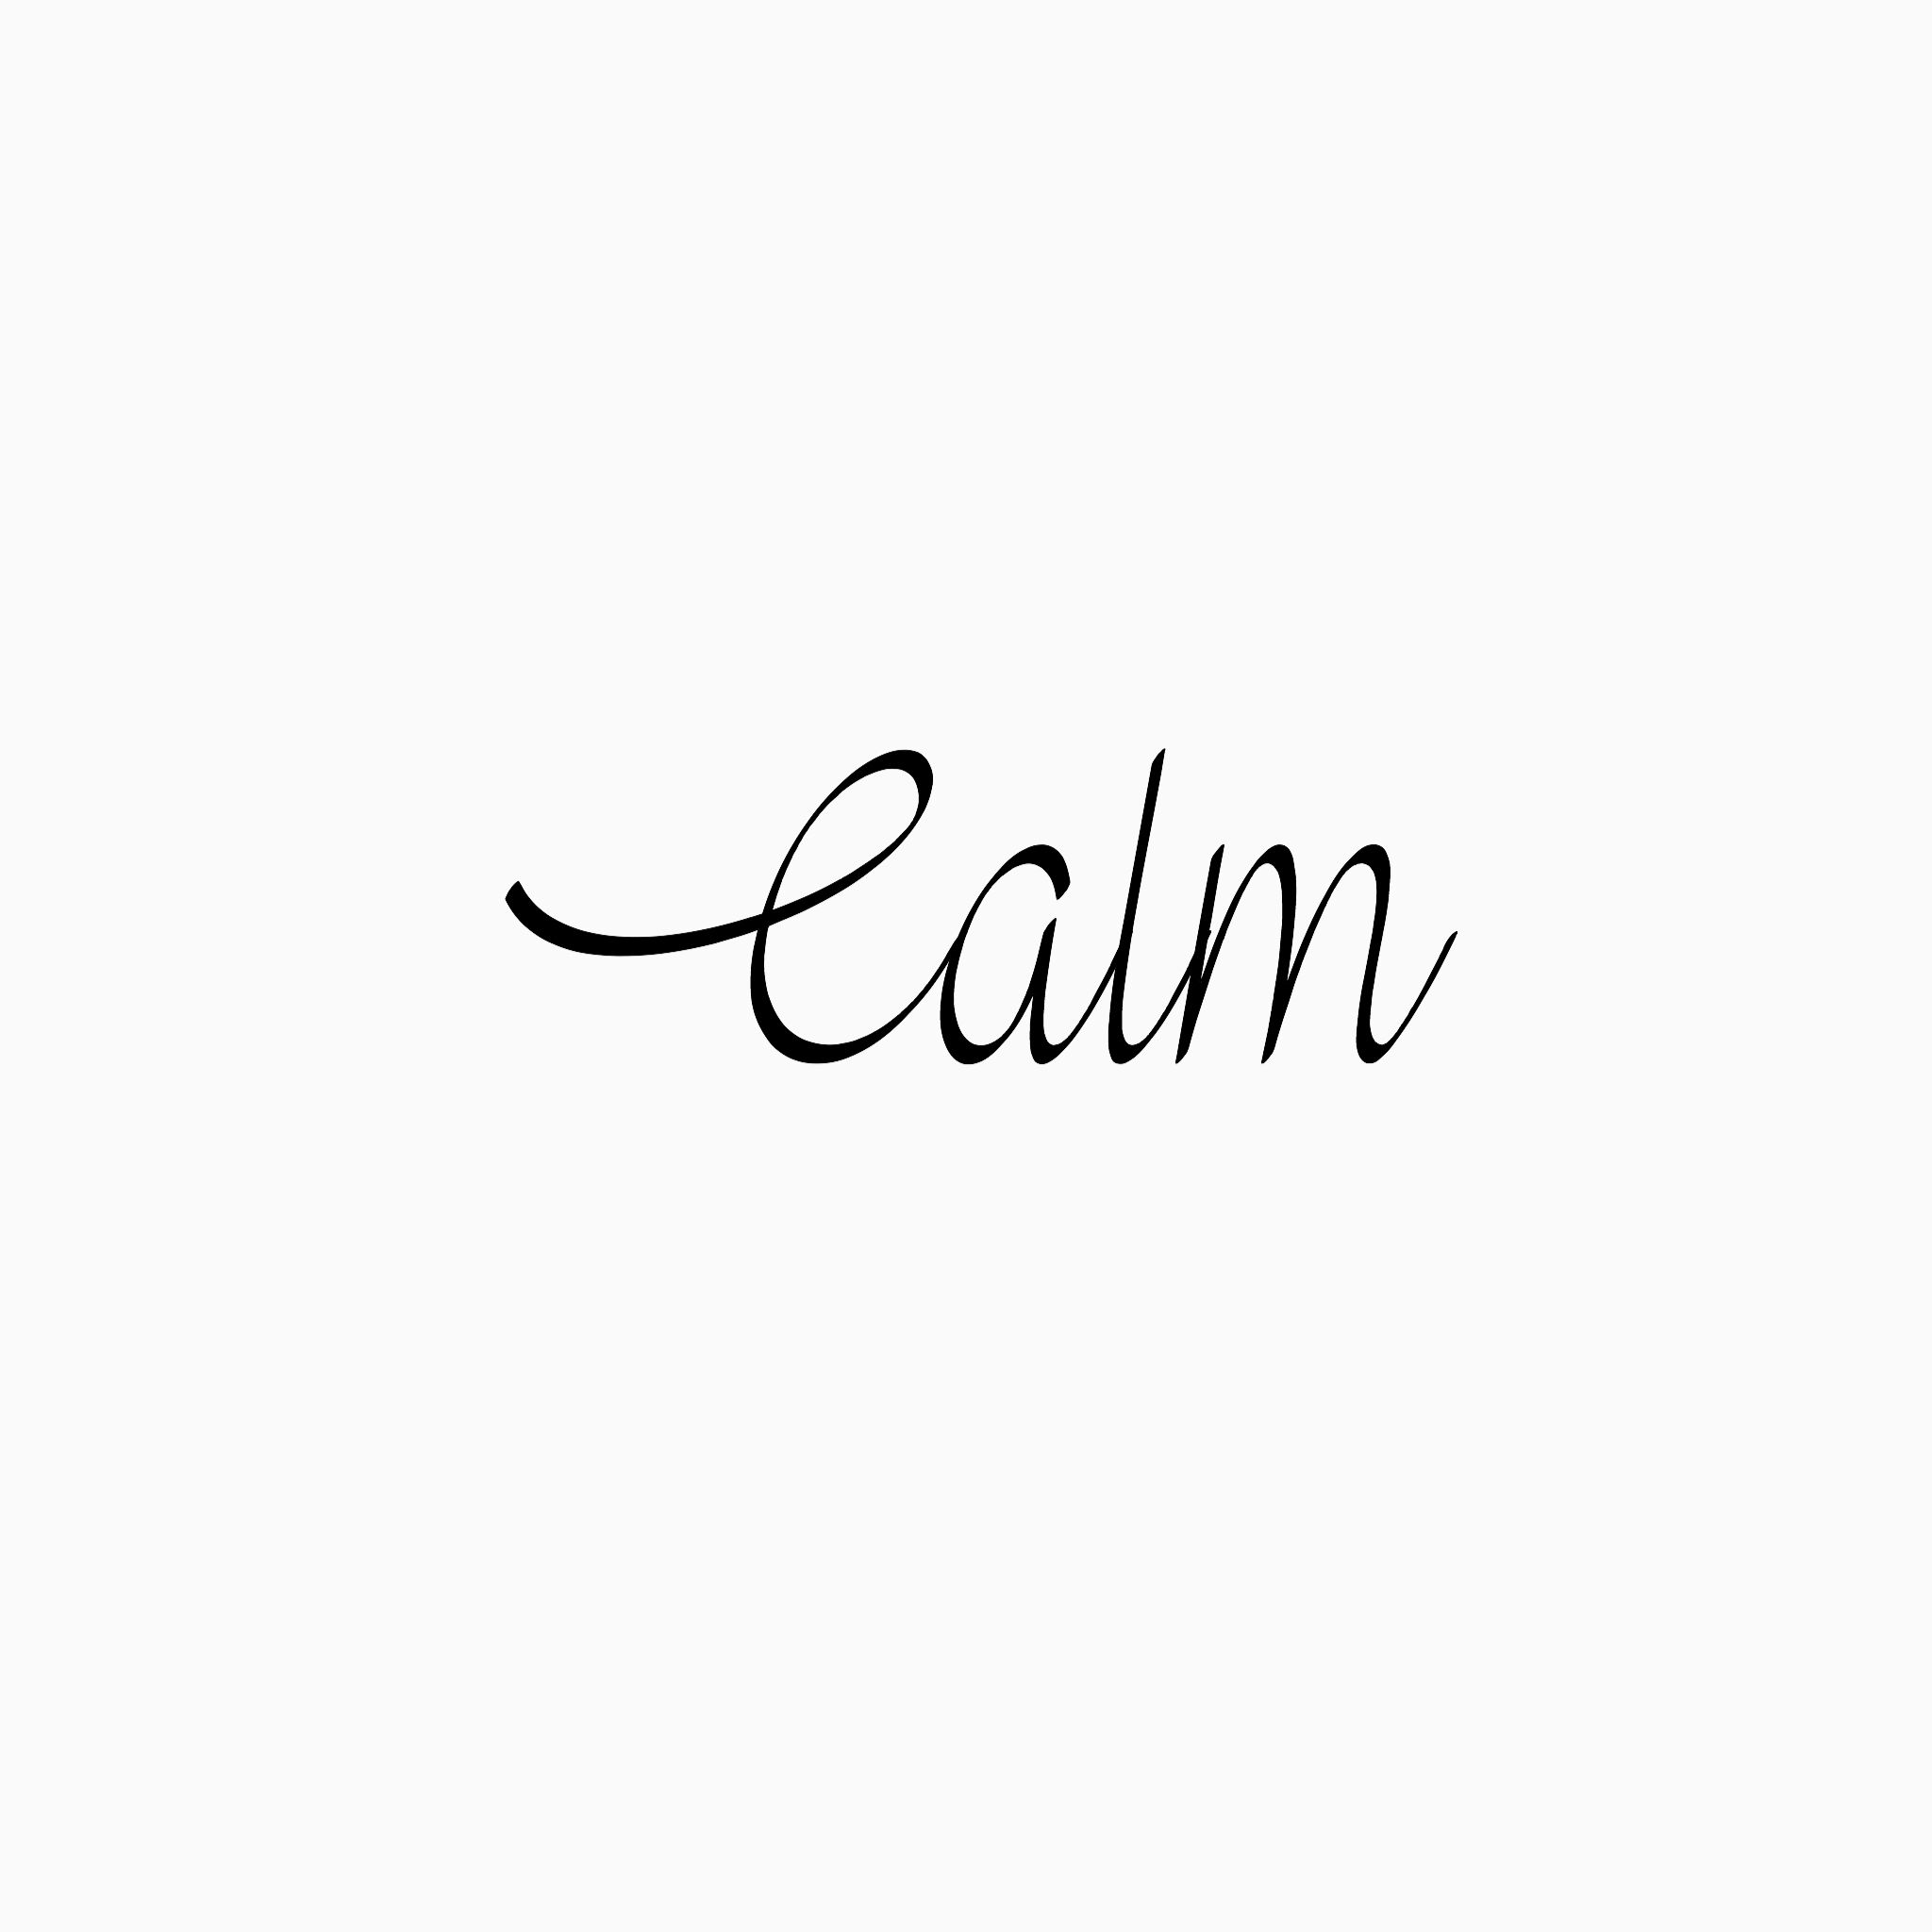 Calm// | <True Words> | Pretty words, Single words, Simple words